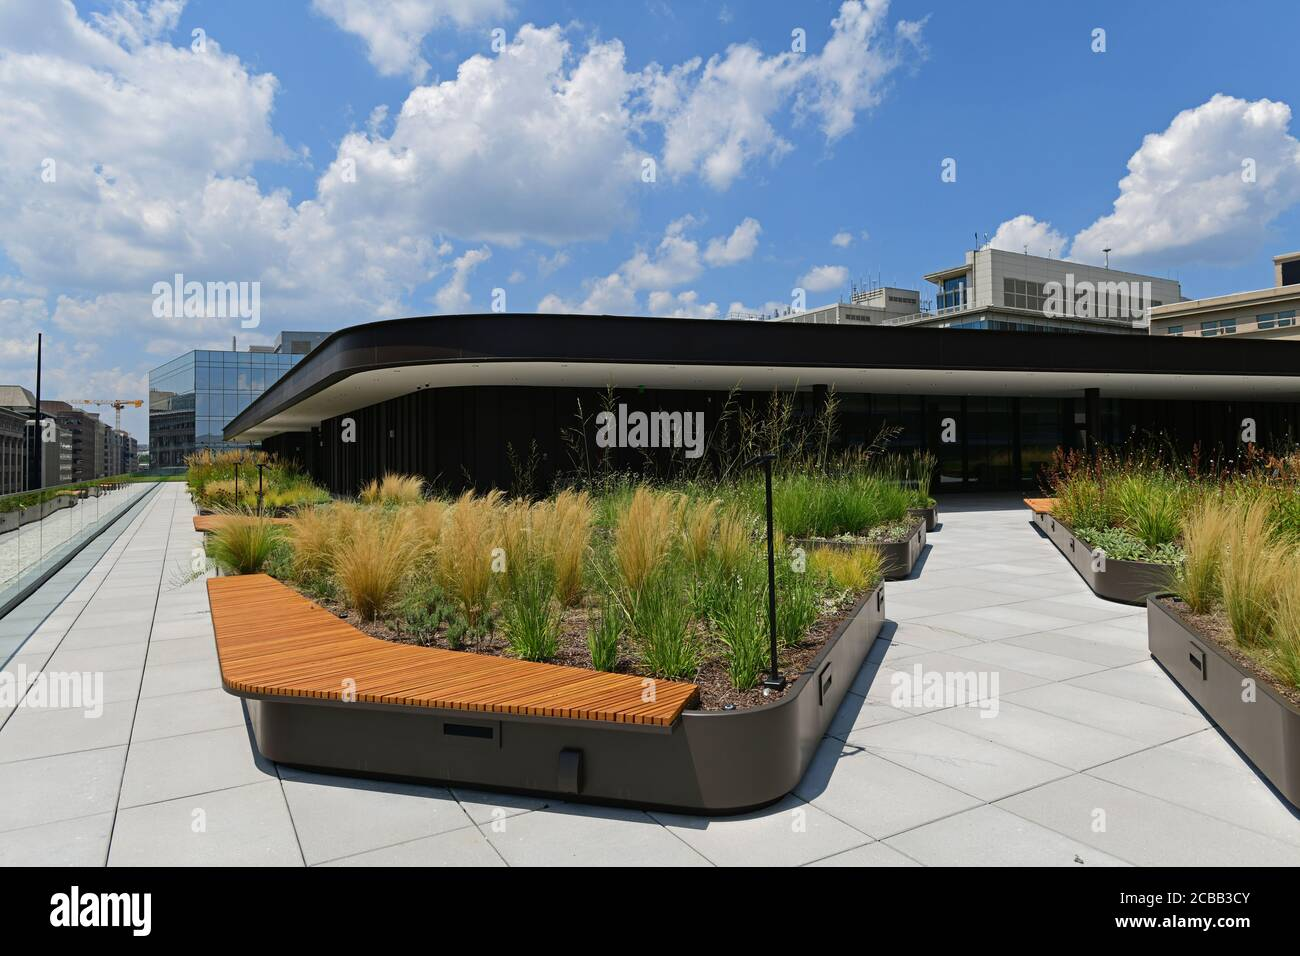 usa-washington-dc-mlk-martin-luther-king-jr-memorial-library-in-chinatown-neighborhood-newly-renovated-rooftop-garden-terrace-2CBB3CY.jpg